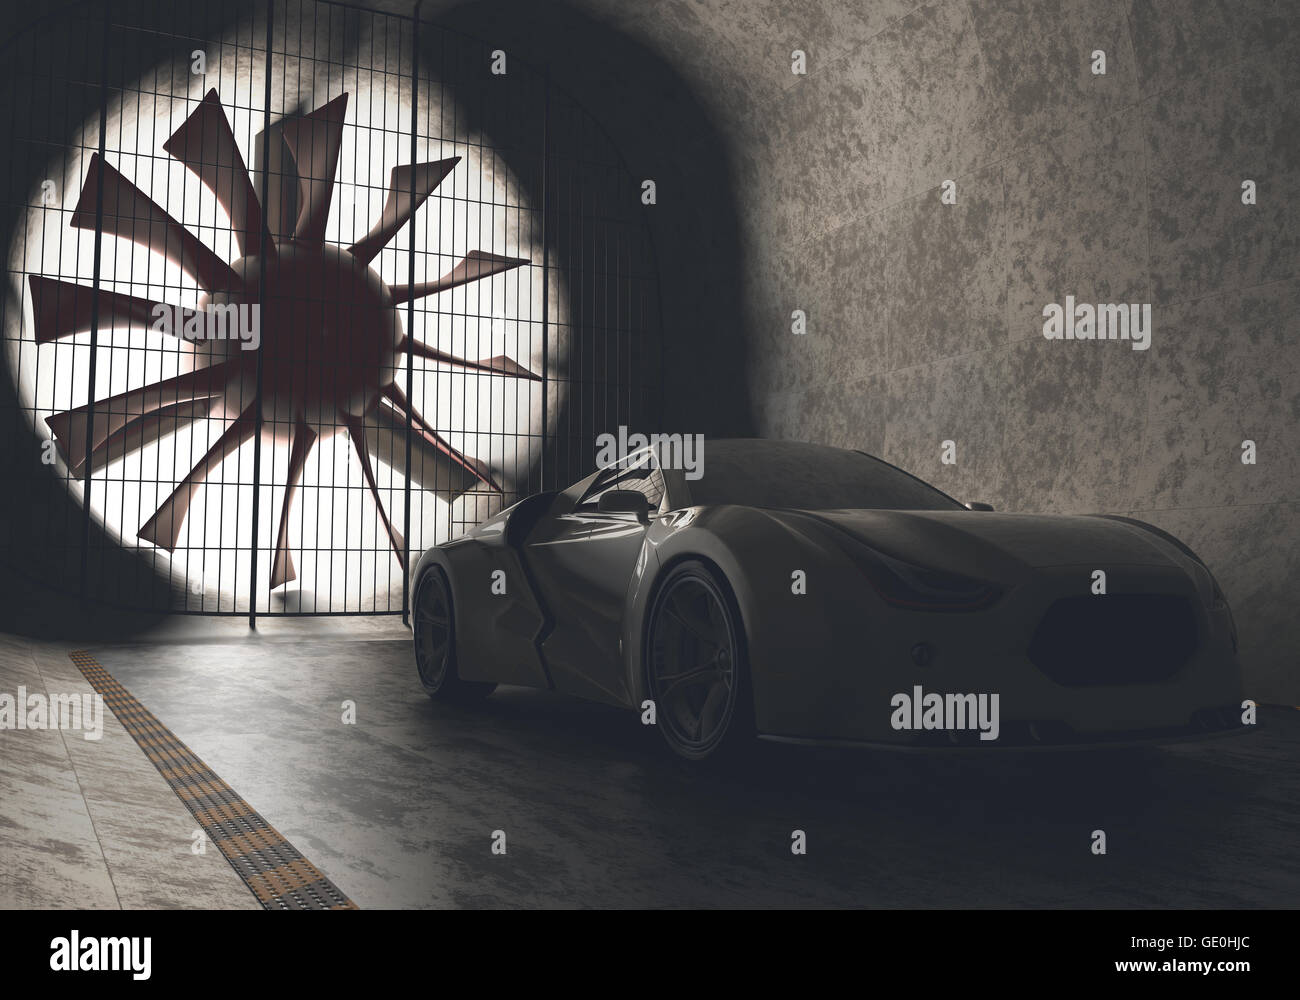 Wind Tunnel Stock Photos & Wind Tunnel Stock Images - Alamy